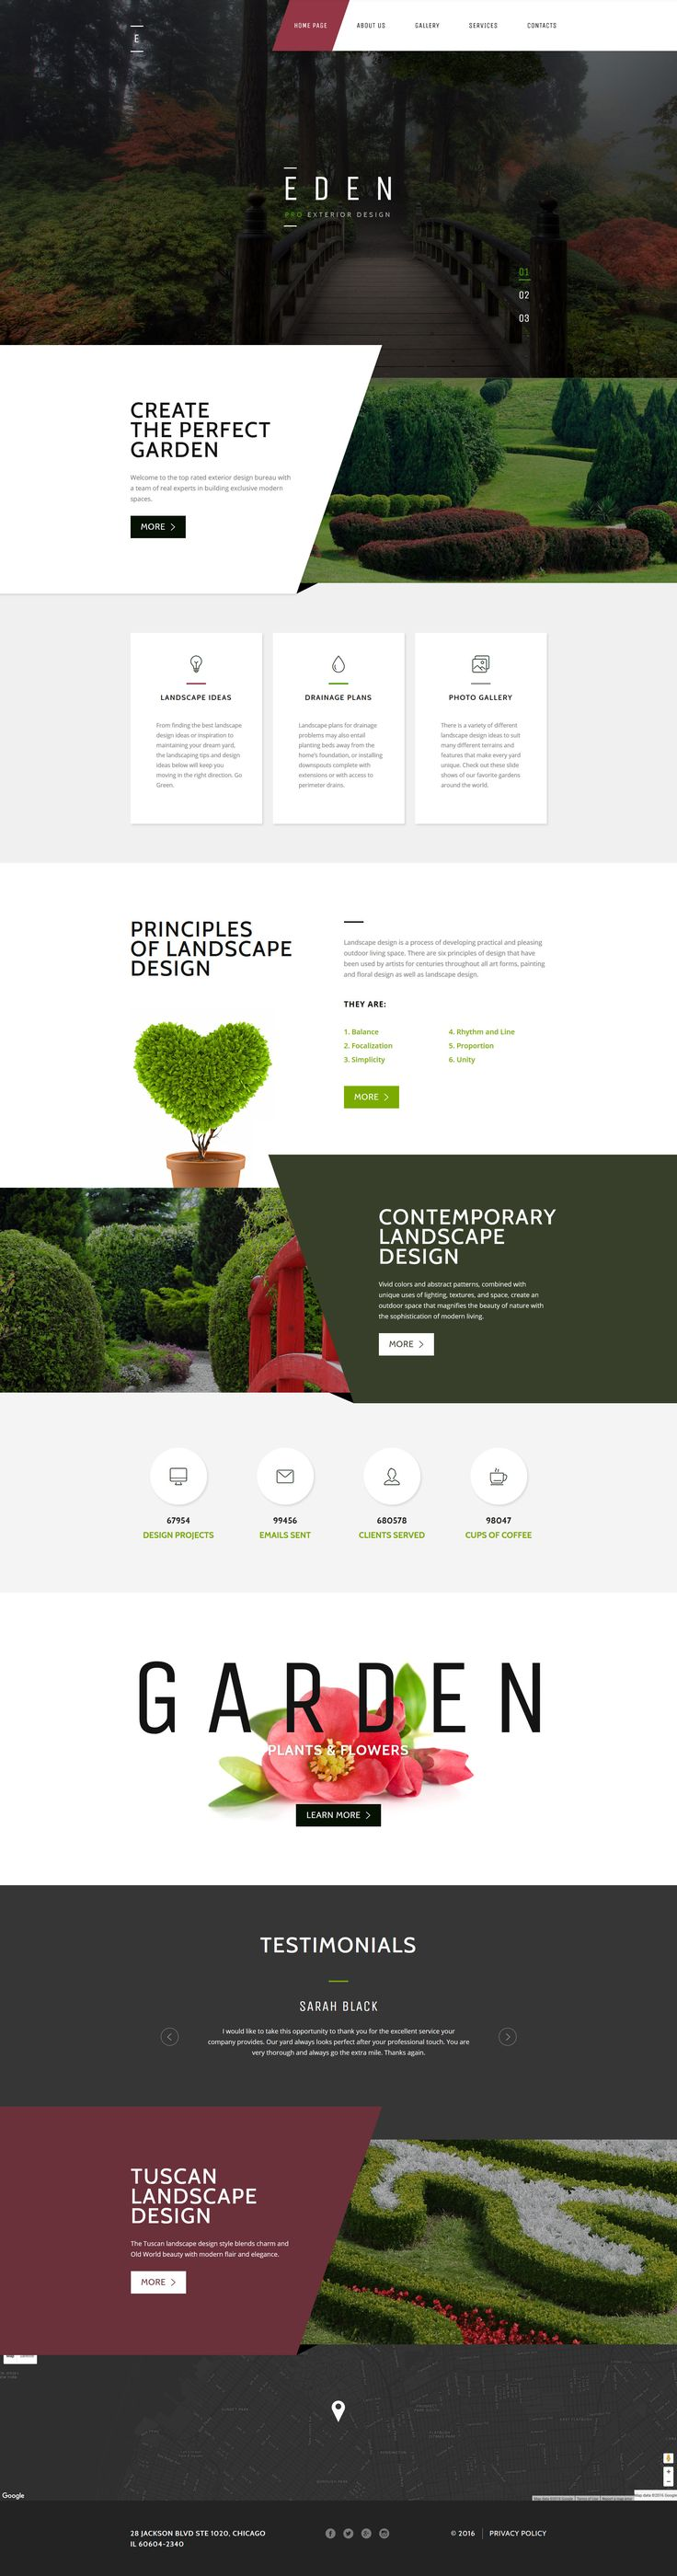 Garden Design Responsive Website Template 58440 Templatemonster